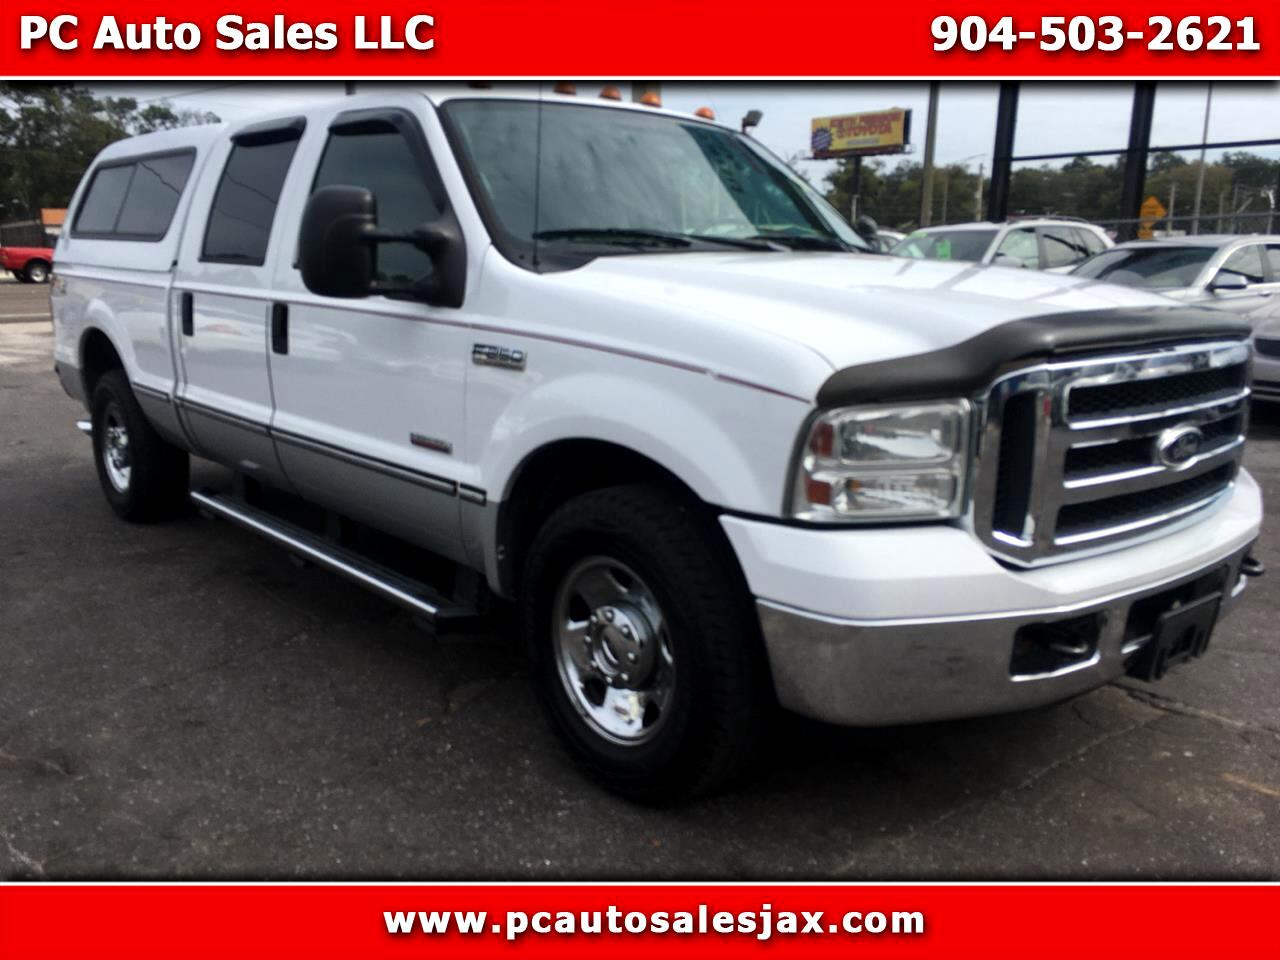 Ford F-250 SD XLT Crew Cab Long Bed 2WD 2006